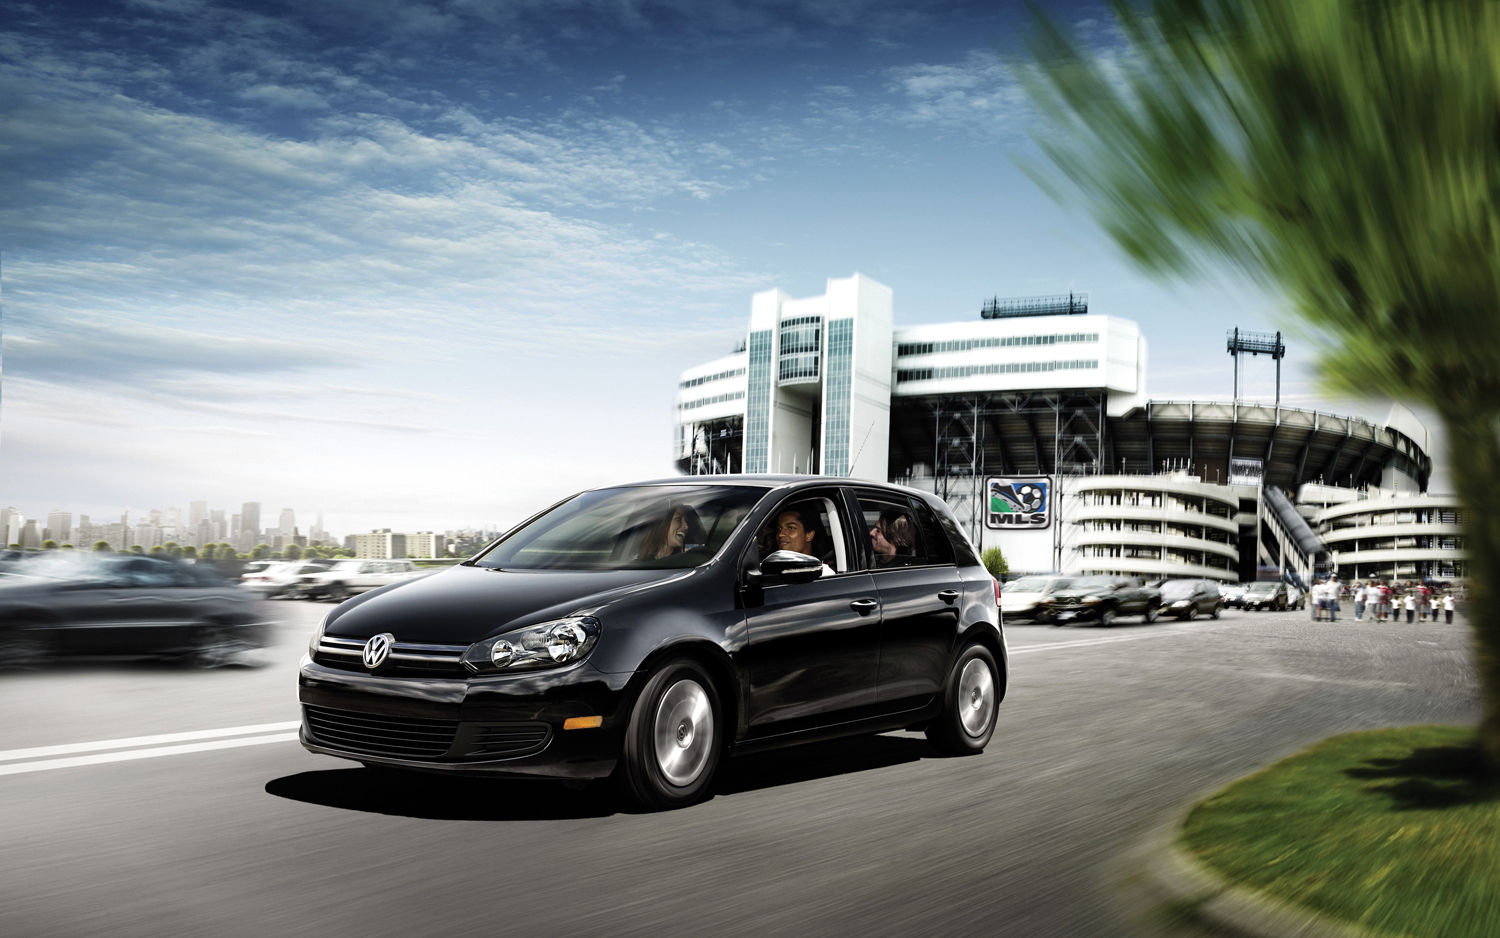 2012 Volkswagen Golf #15